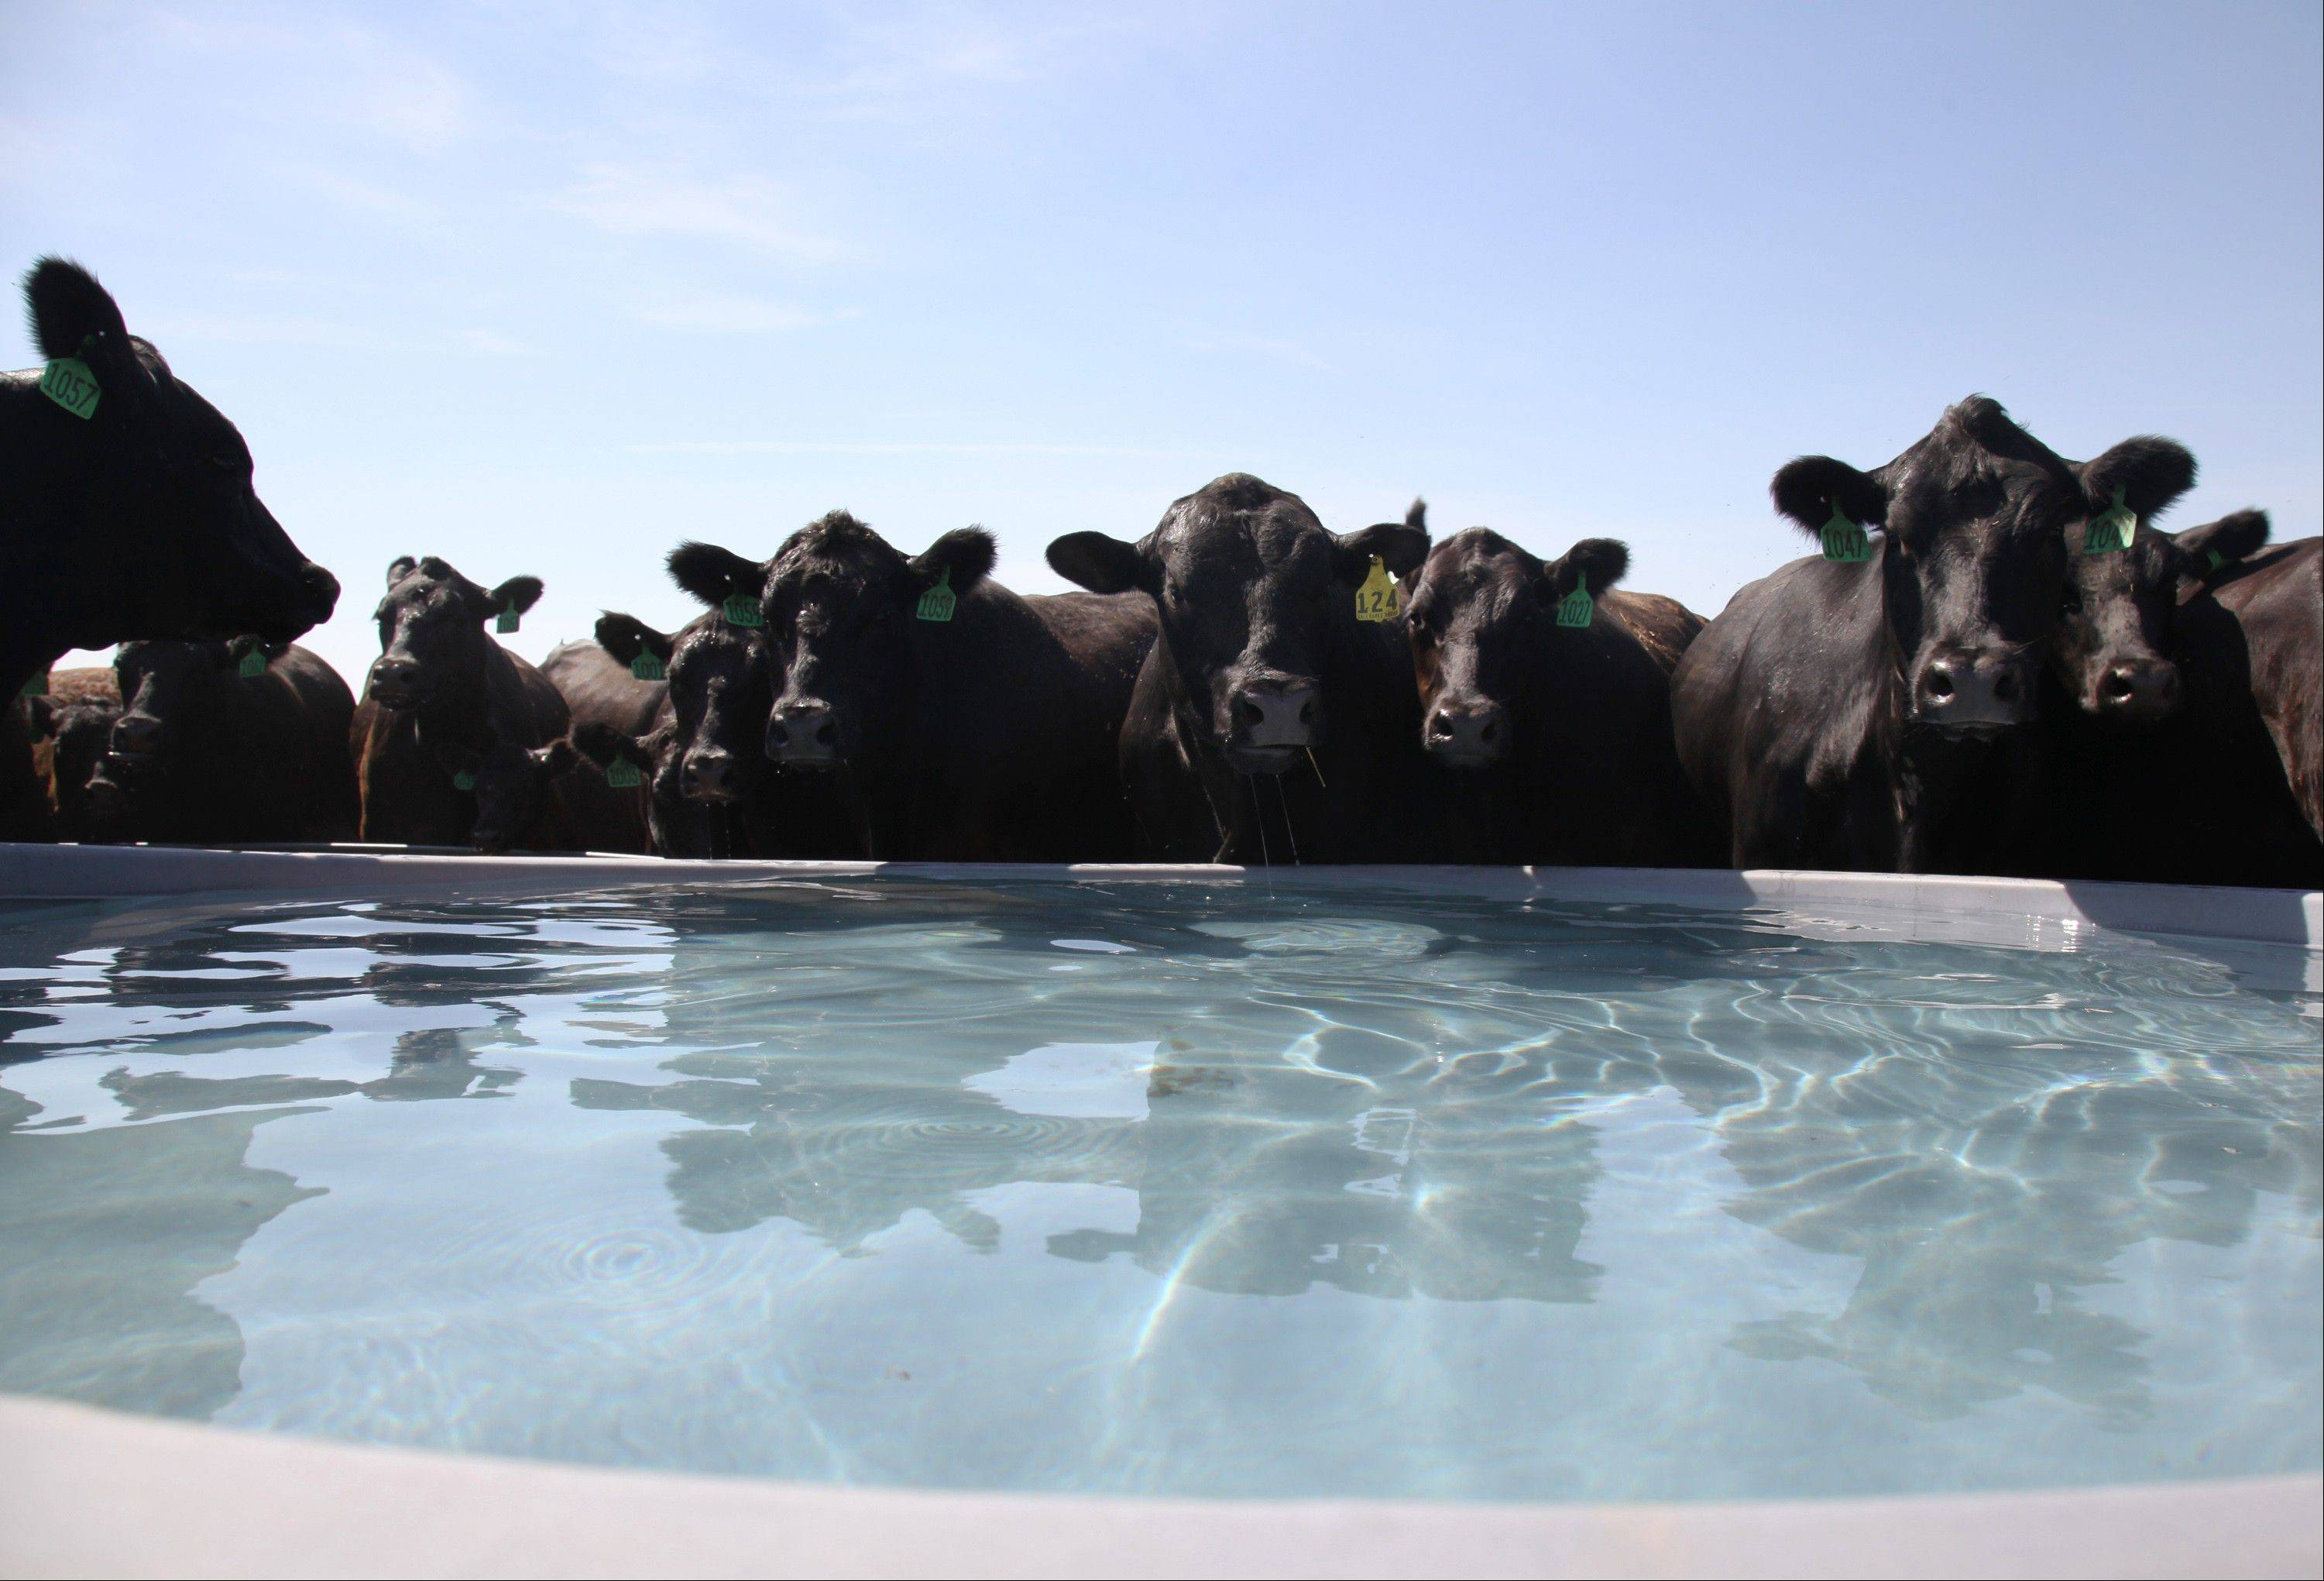 A herd of cattle belonging to Kendal Grecian drink from a water tank at his ranch in Palco, Kan.